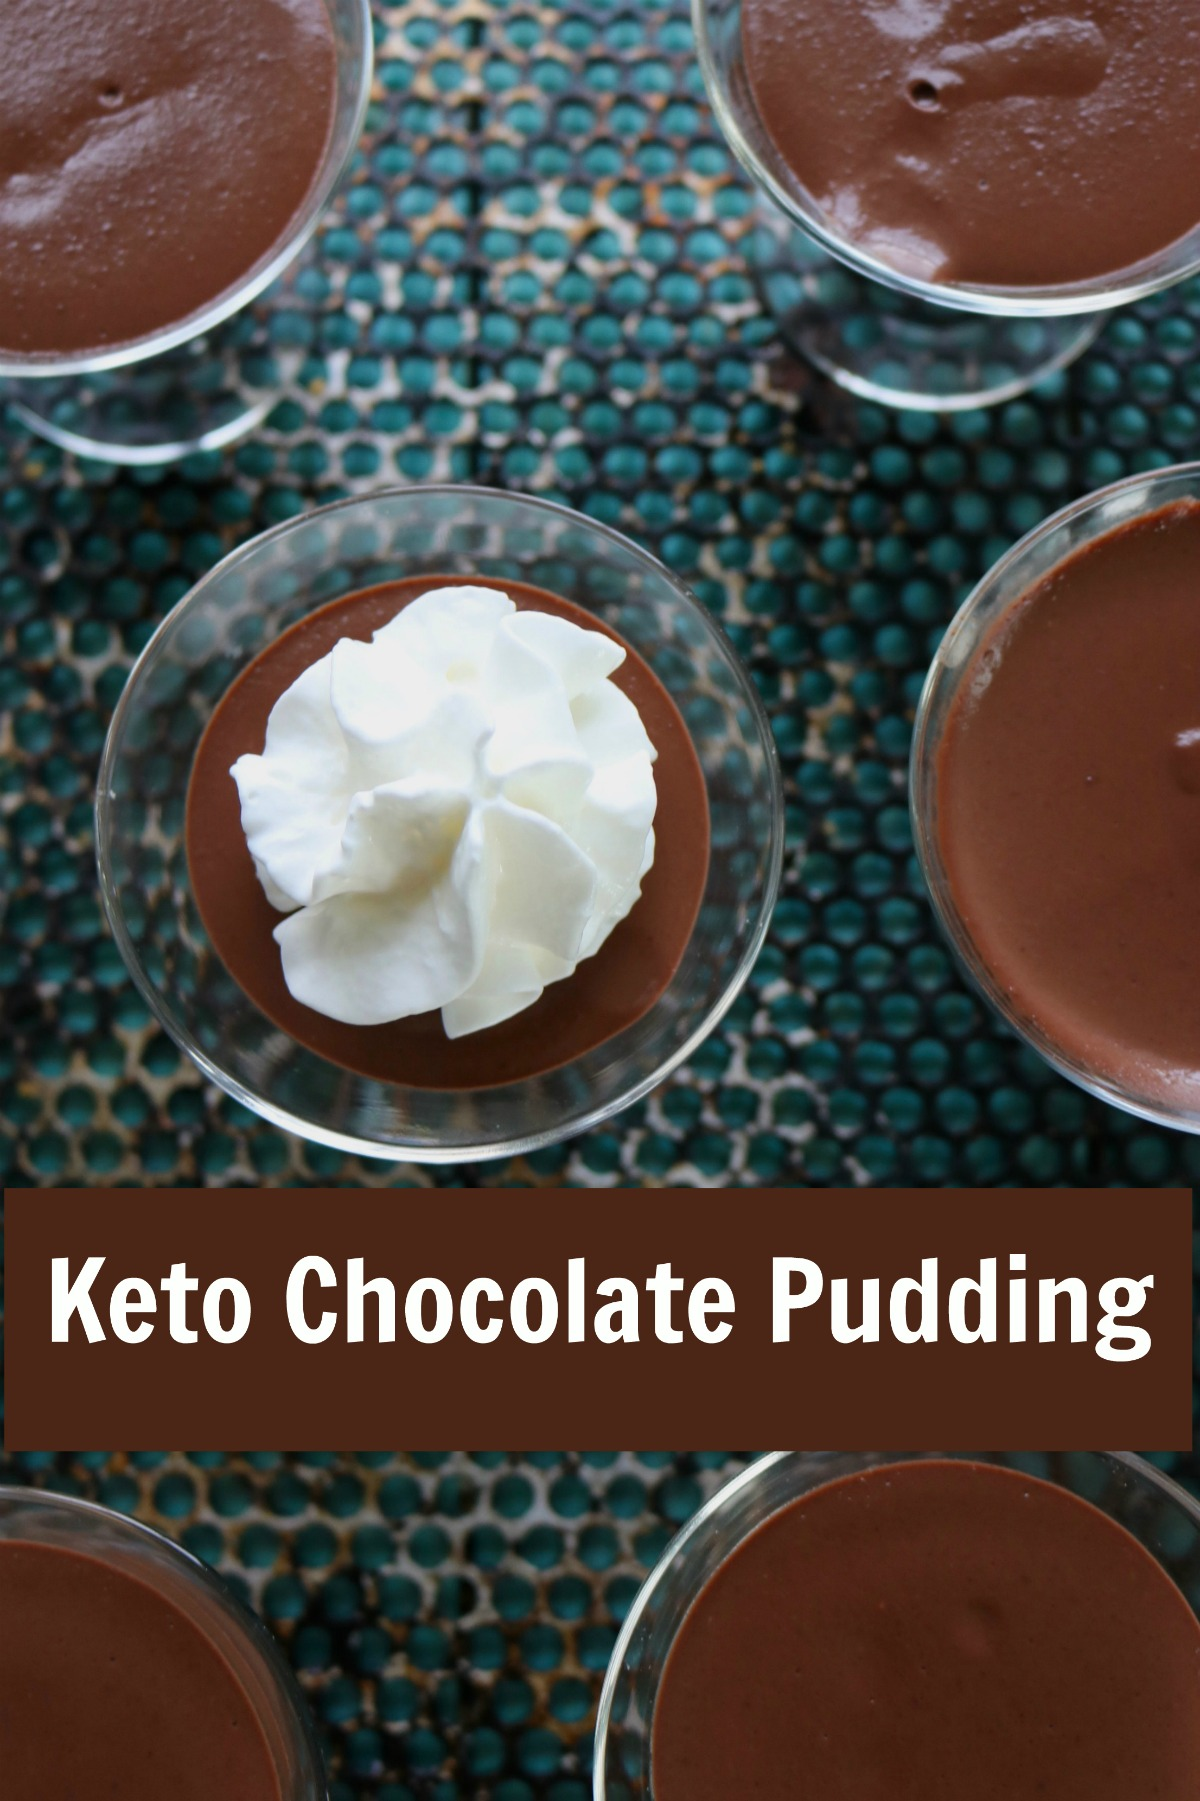 Sugar free chocolate pudding made with Swerve Sweetener, takes you back to childhood. Only 147 calories, 2 net carbs per serving. #lowcarbchoocolatepuddingrecipe #ketochocolatepudding #ketochocolatedessert #spinachtiger via @angelaroberts